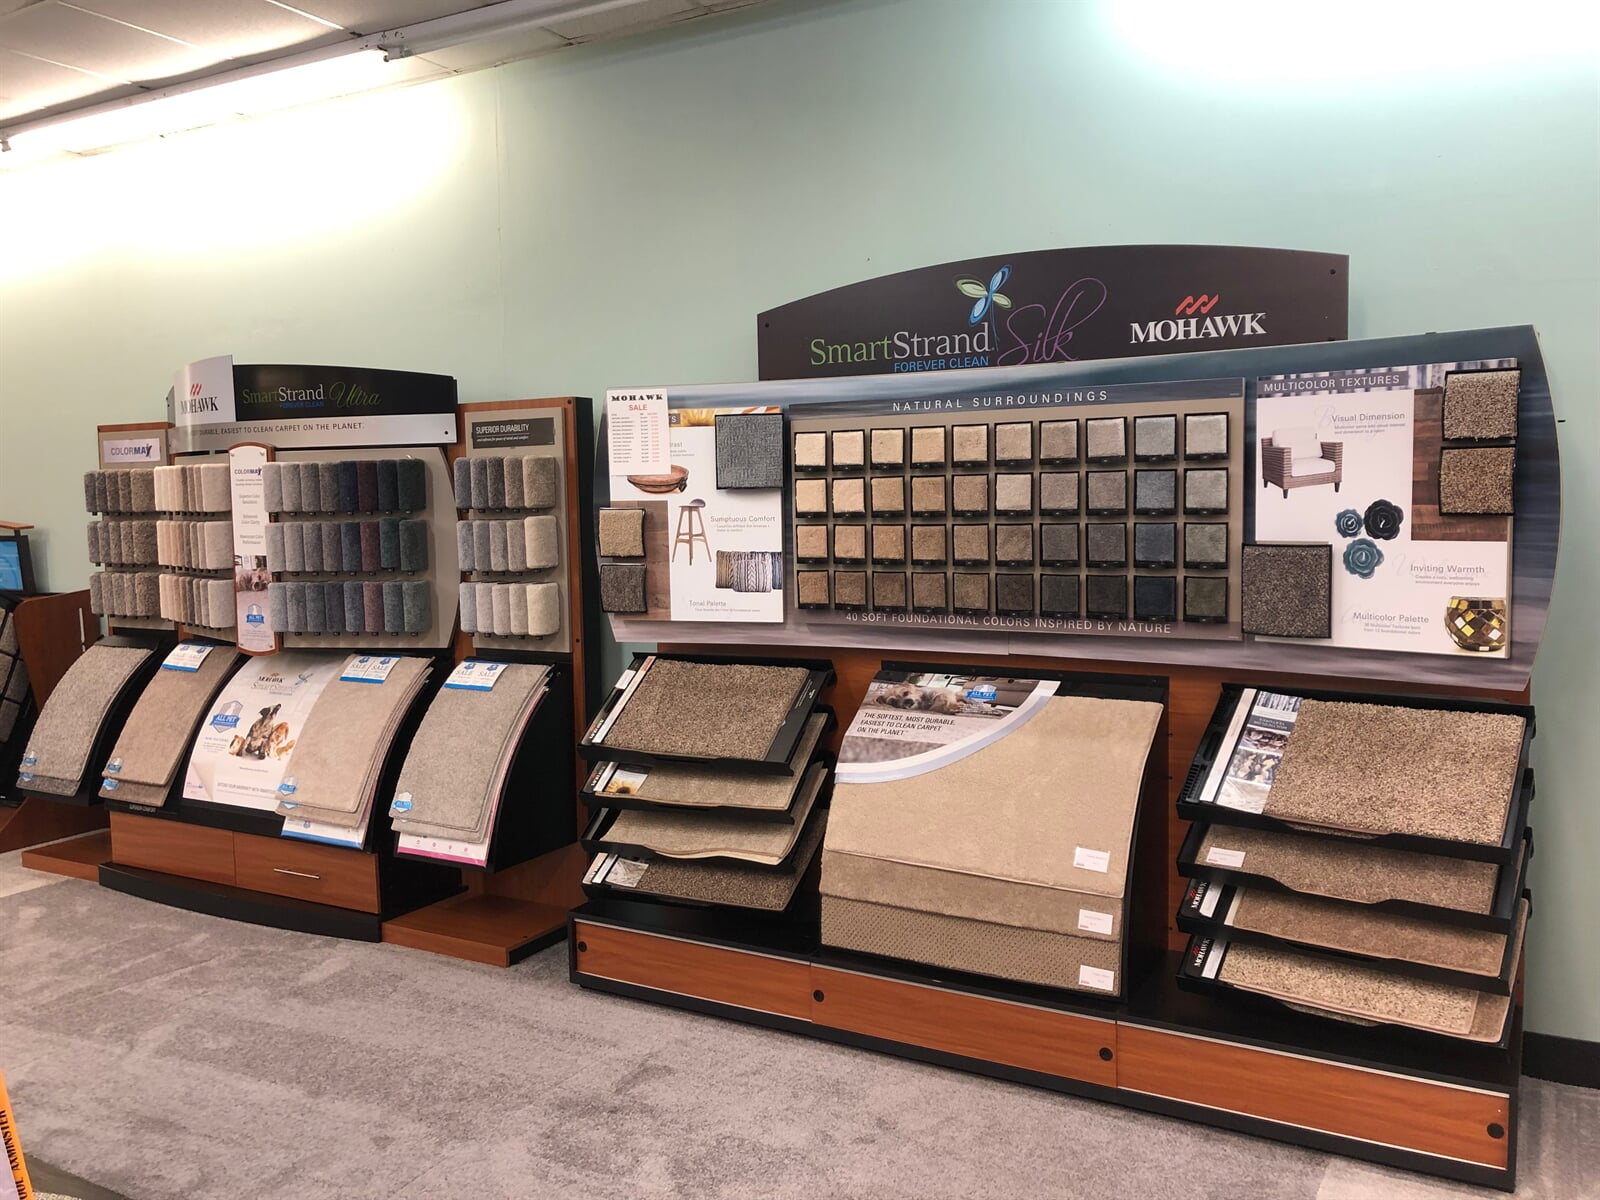 SmartStrand carpet options in New River Valley, VA from The Floor Source